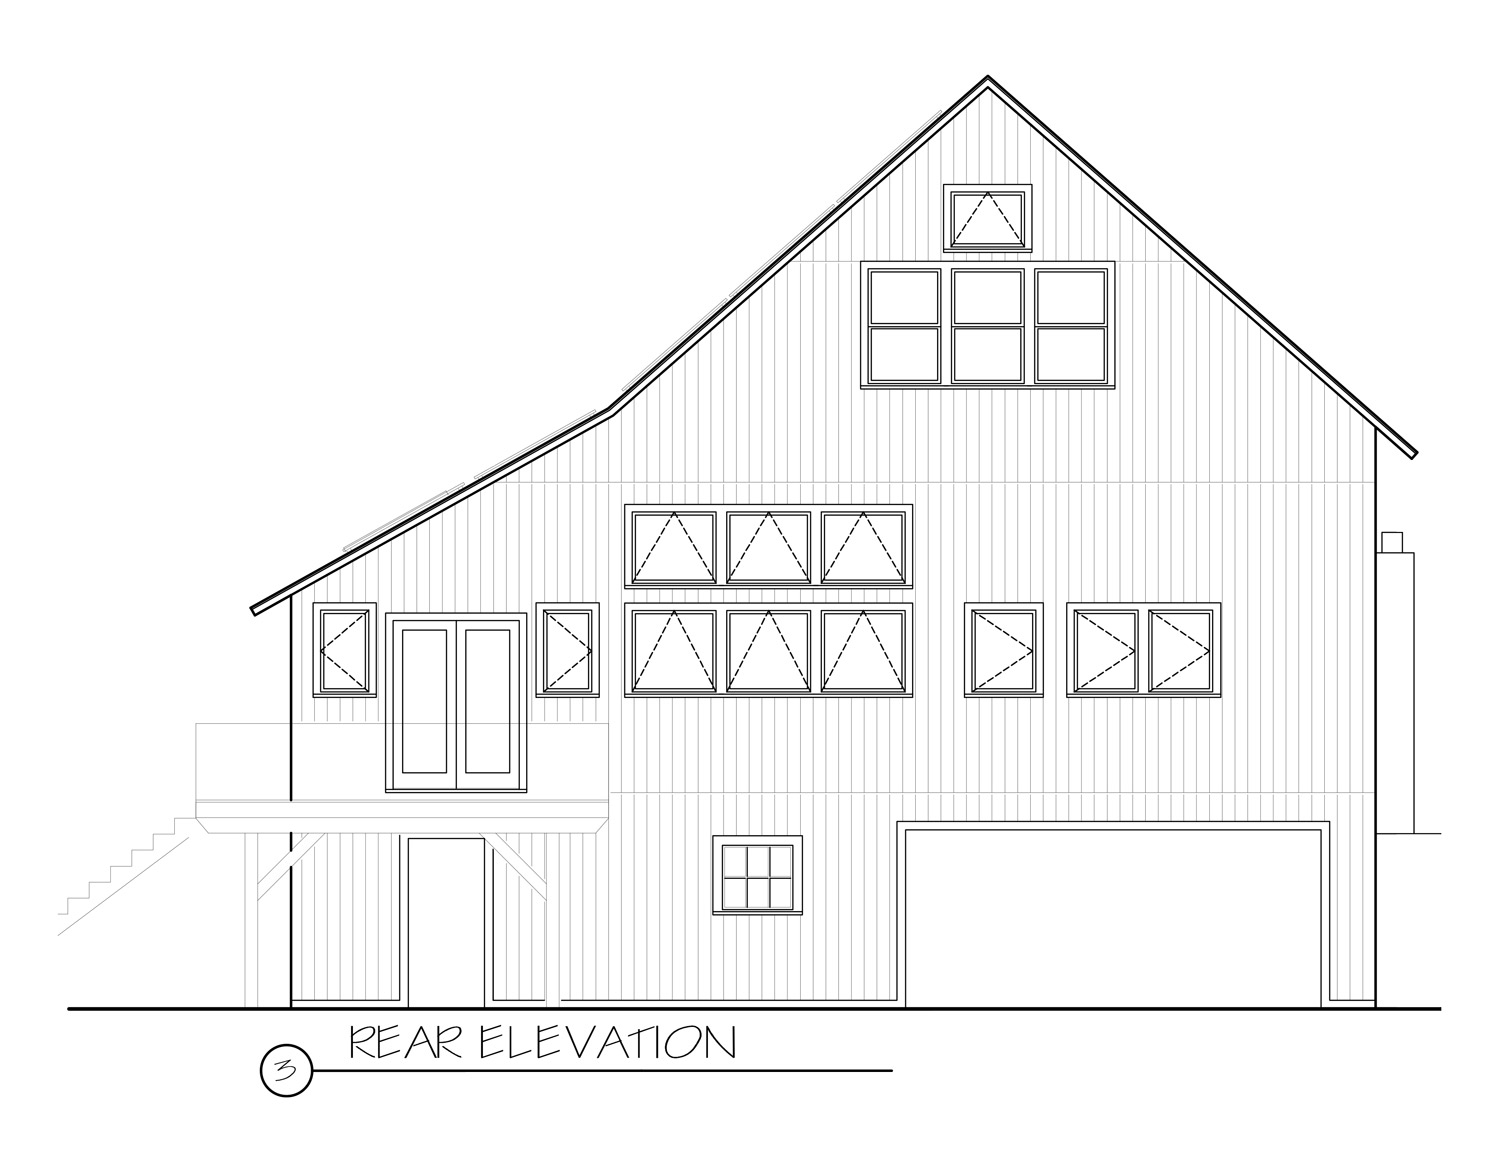 Rear-Elevation.upload.jpg